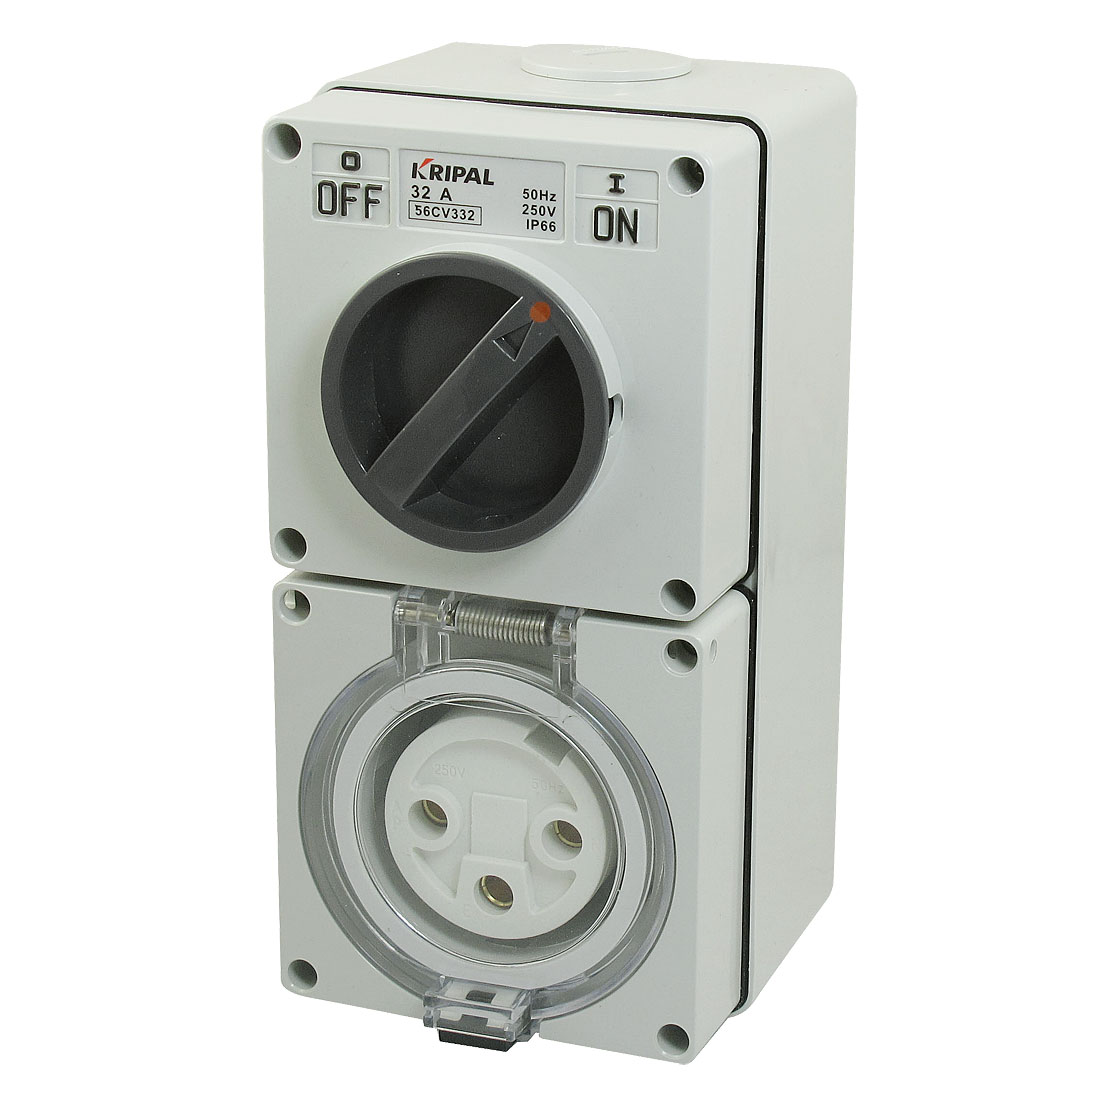 AC 250V 32A IP66 Two Phase 3 Round Pin 56CV332 Combination Switch w Socket